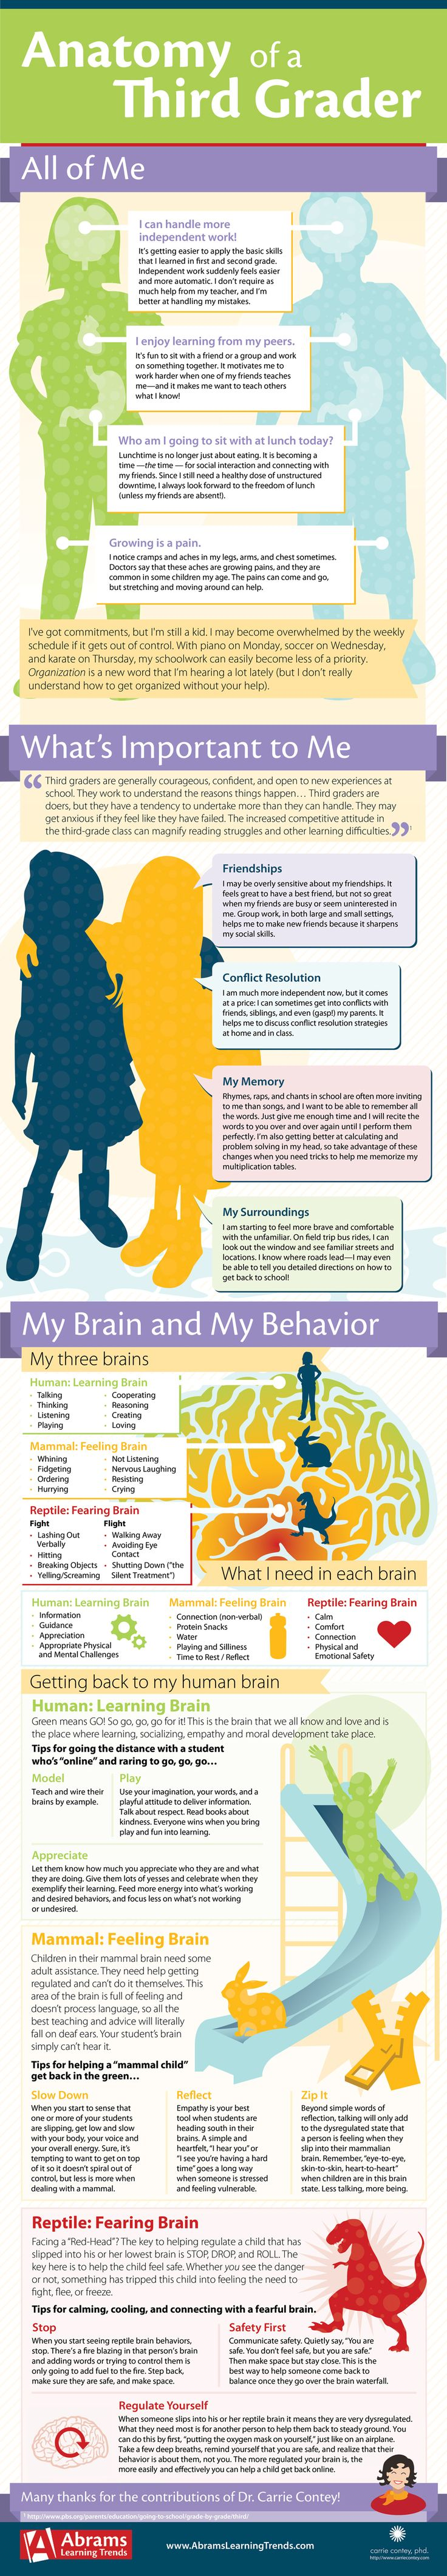 #Infographic with physical, social, cognitive, and emotional norms for #thirdgrade. So helpful! While third graders are eager to exert their own self-reliance, doing so comes with new levels of conflict with friends (and parents!).